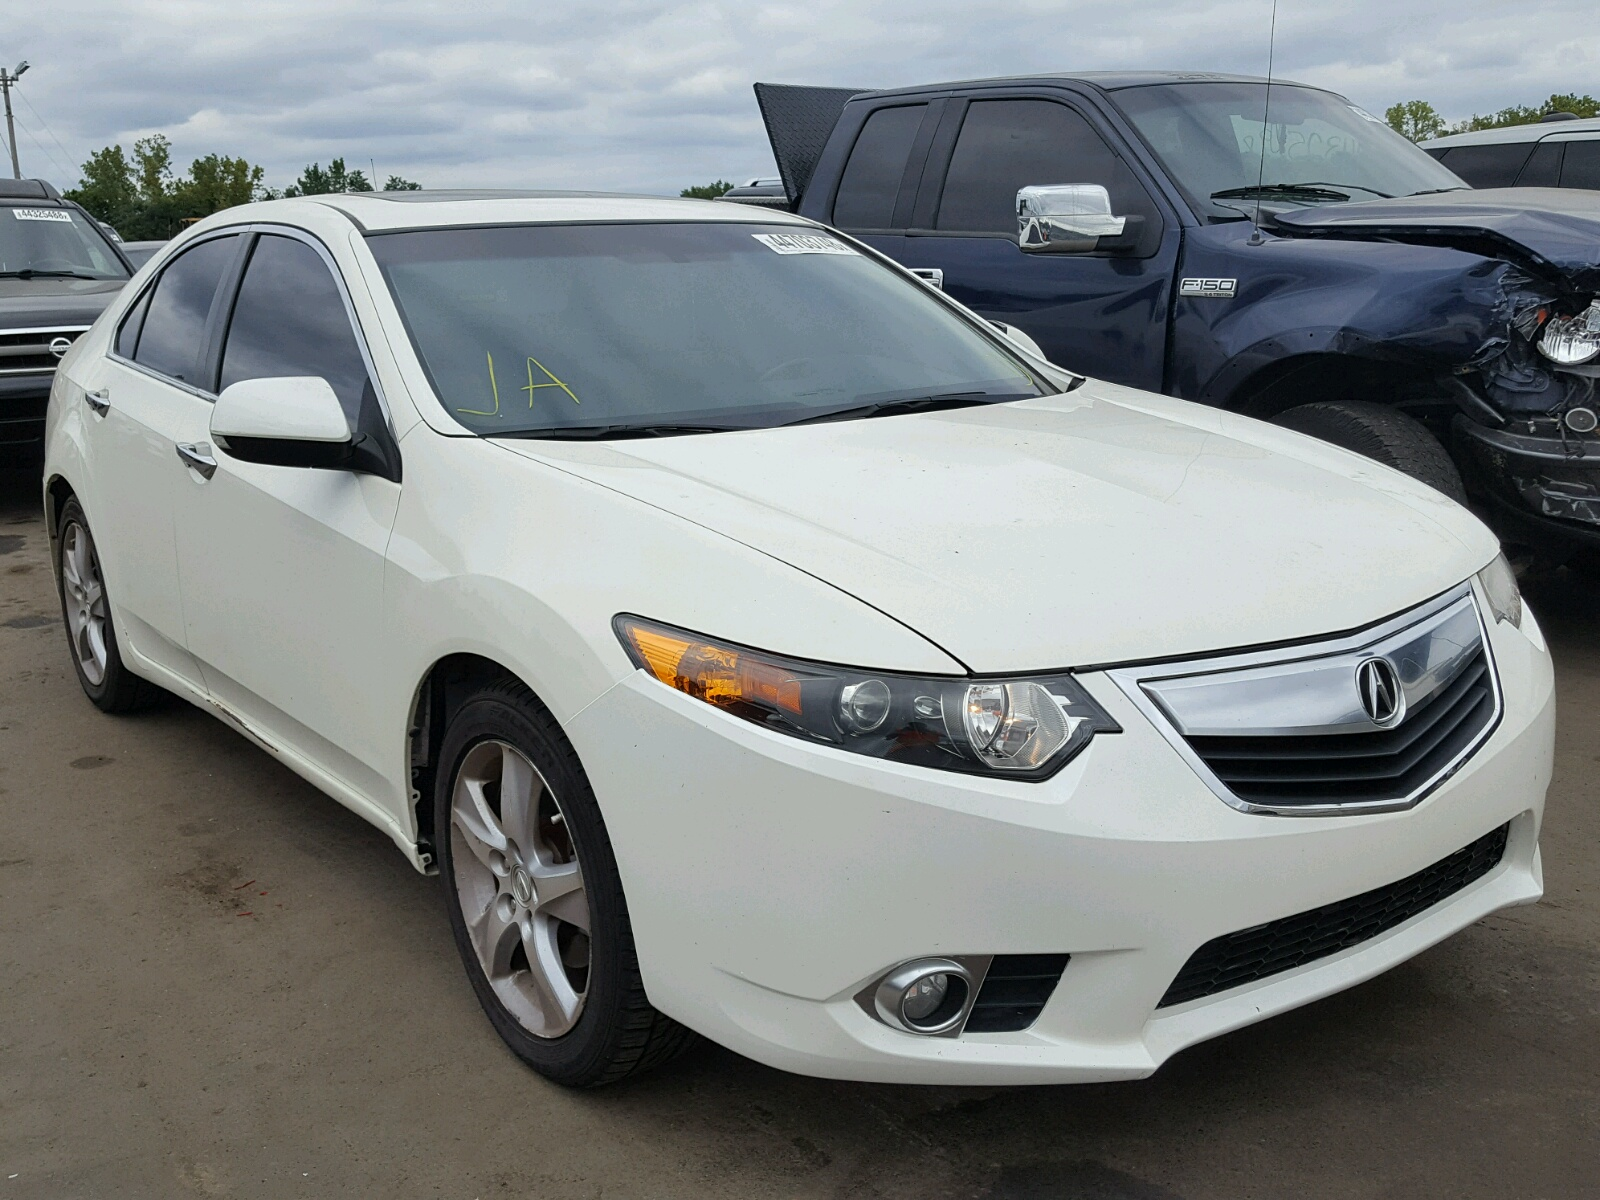 Acura TSX For Sale At Copart New Britain CT Lot - Acura tsx for sale in ct